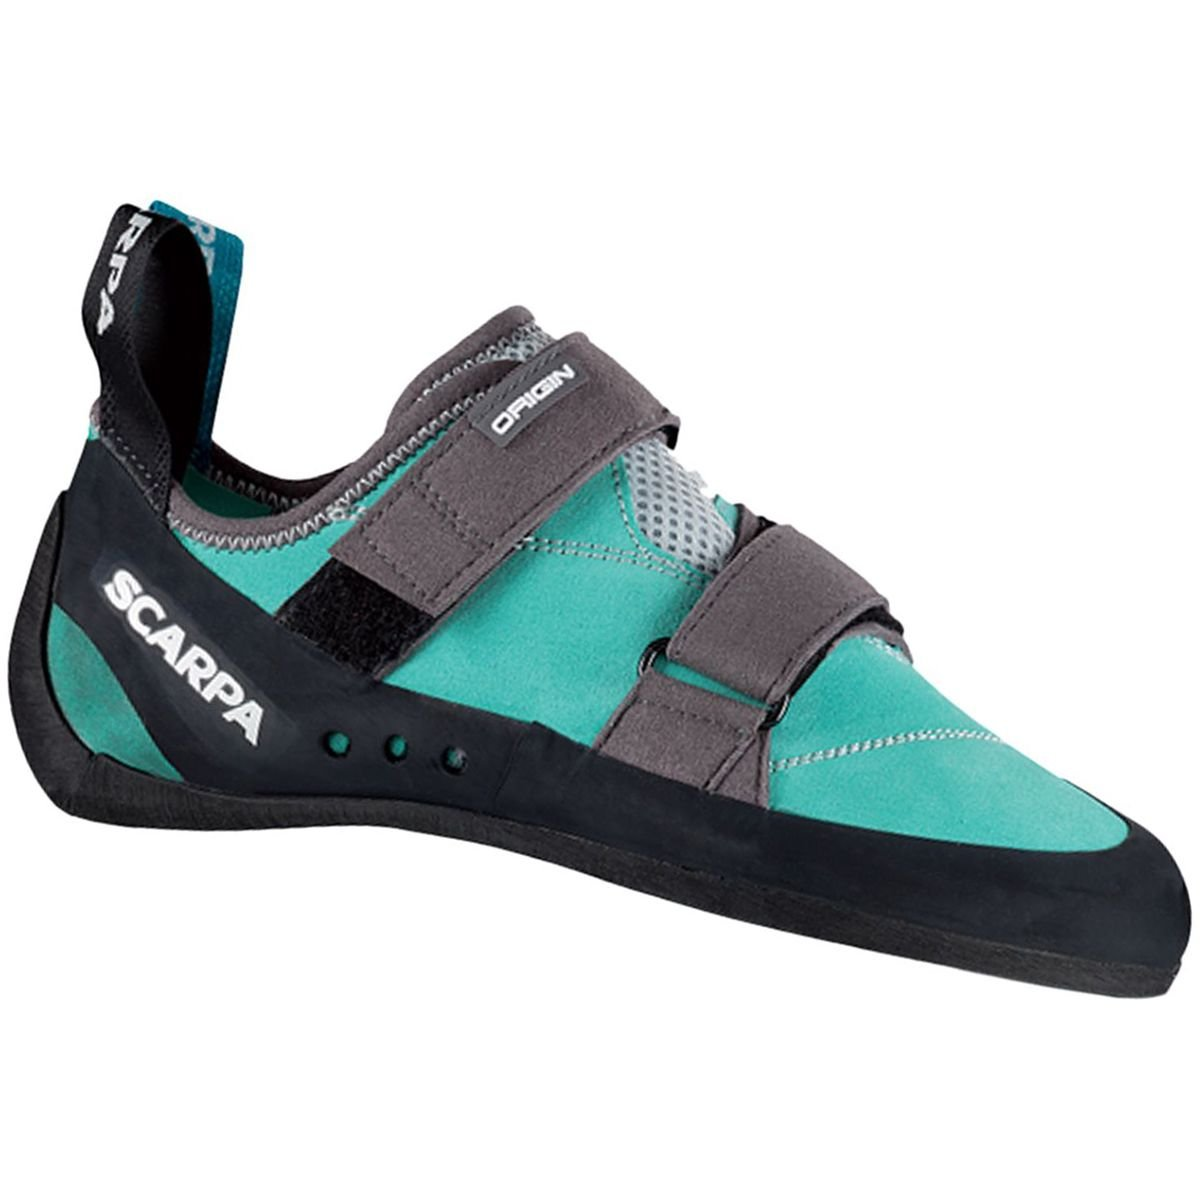 SCARPA Women's Origin WMN Climbing Shoe, Green Blue/Smoke, 34.5 EU/4 M US by SCARPA